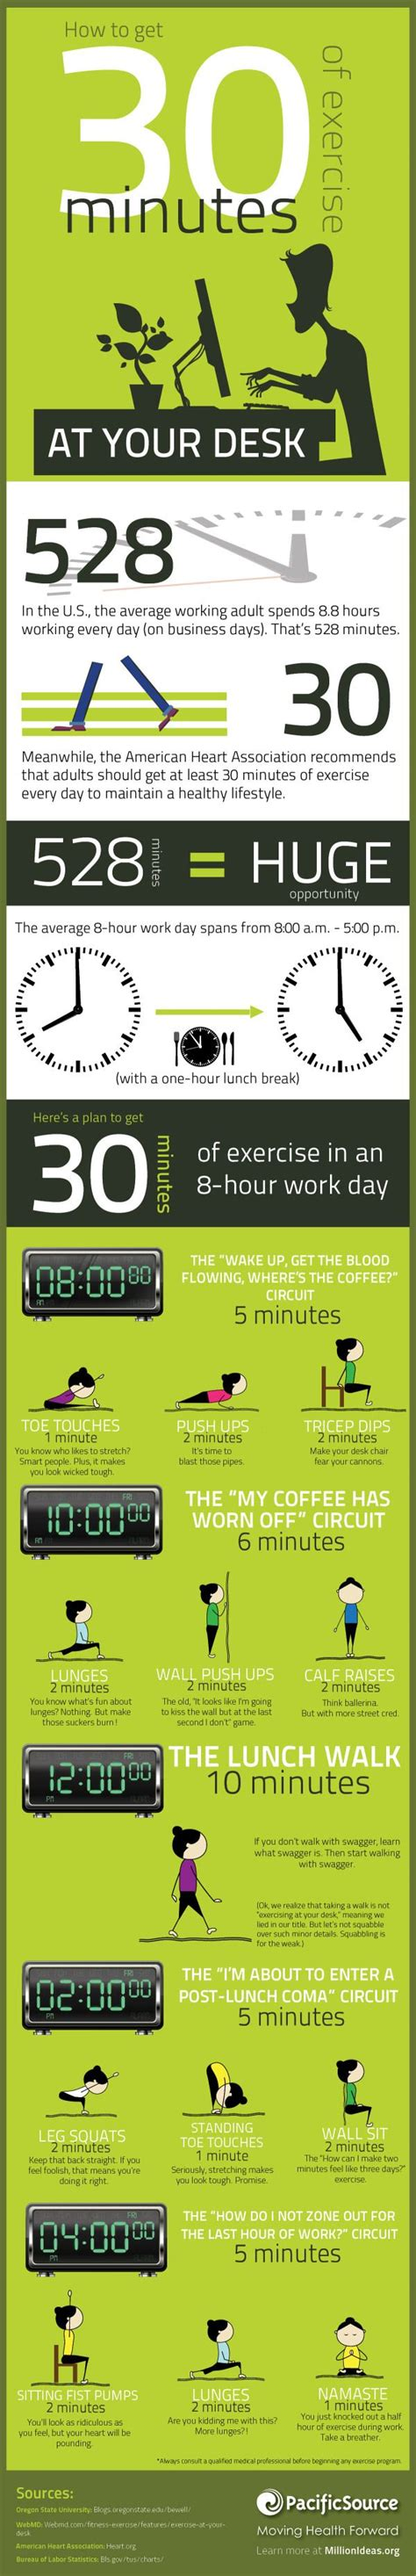 how to get a desk job how to get 30 minutes of exercise at your desk by